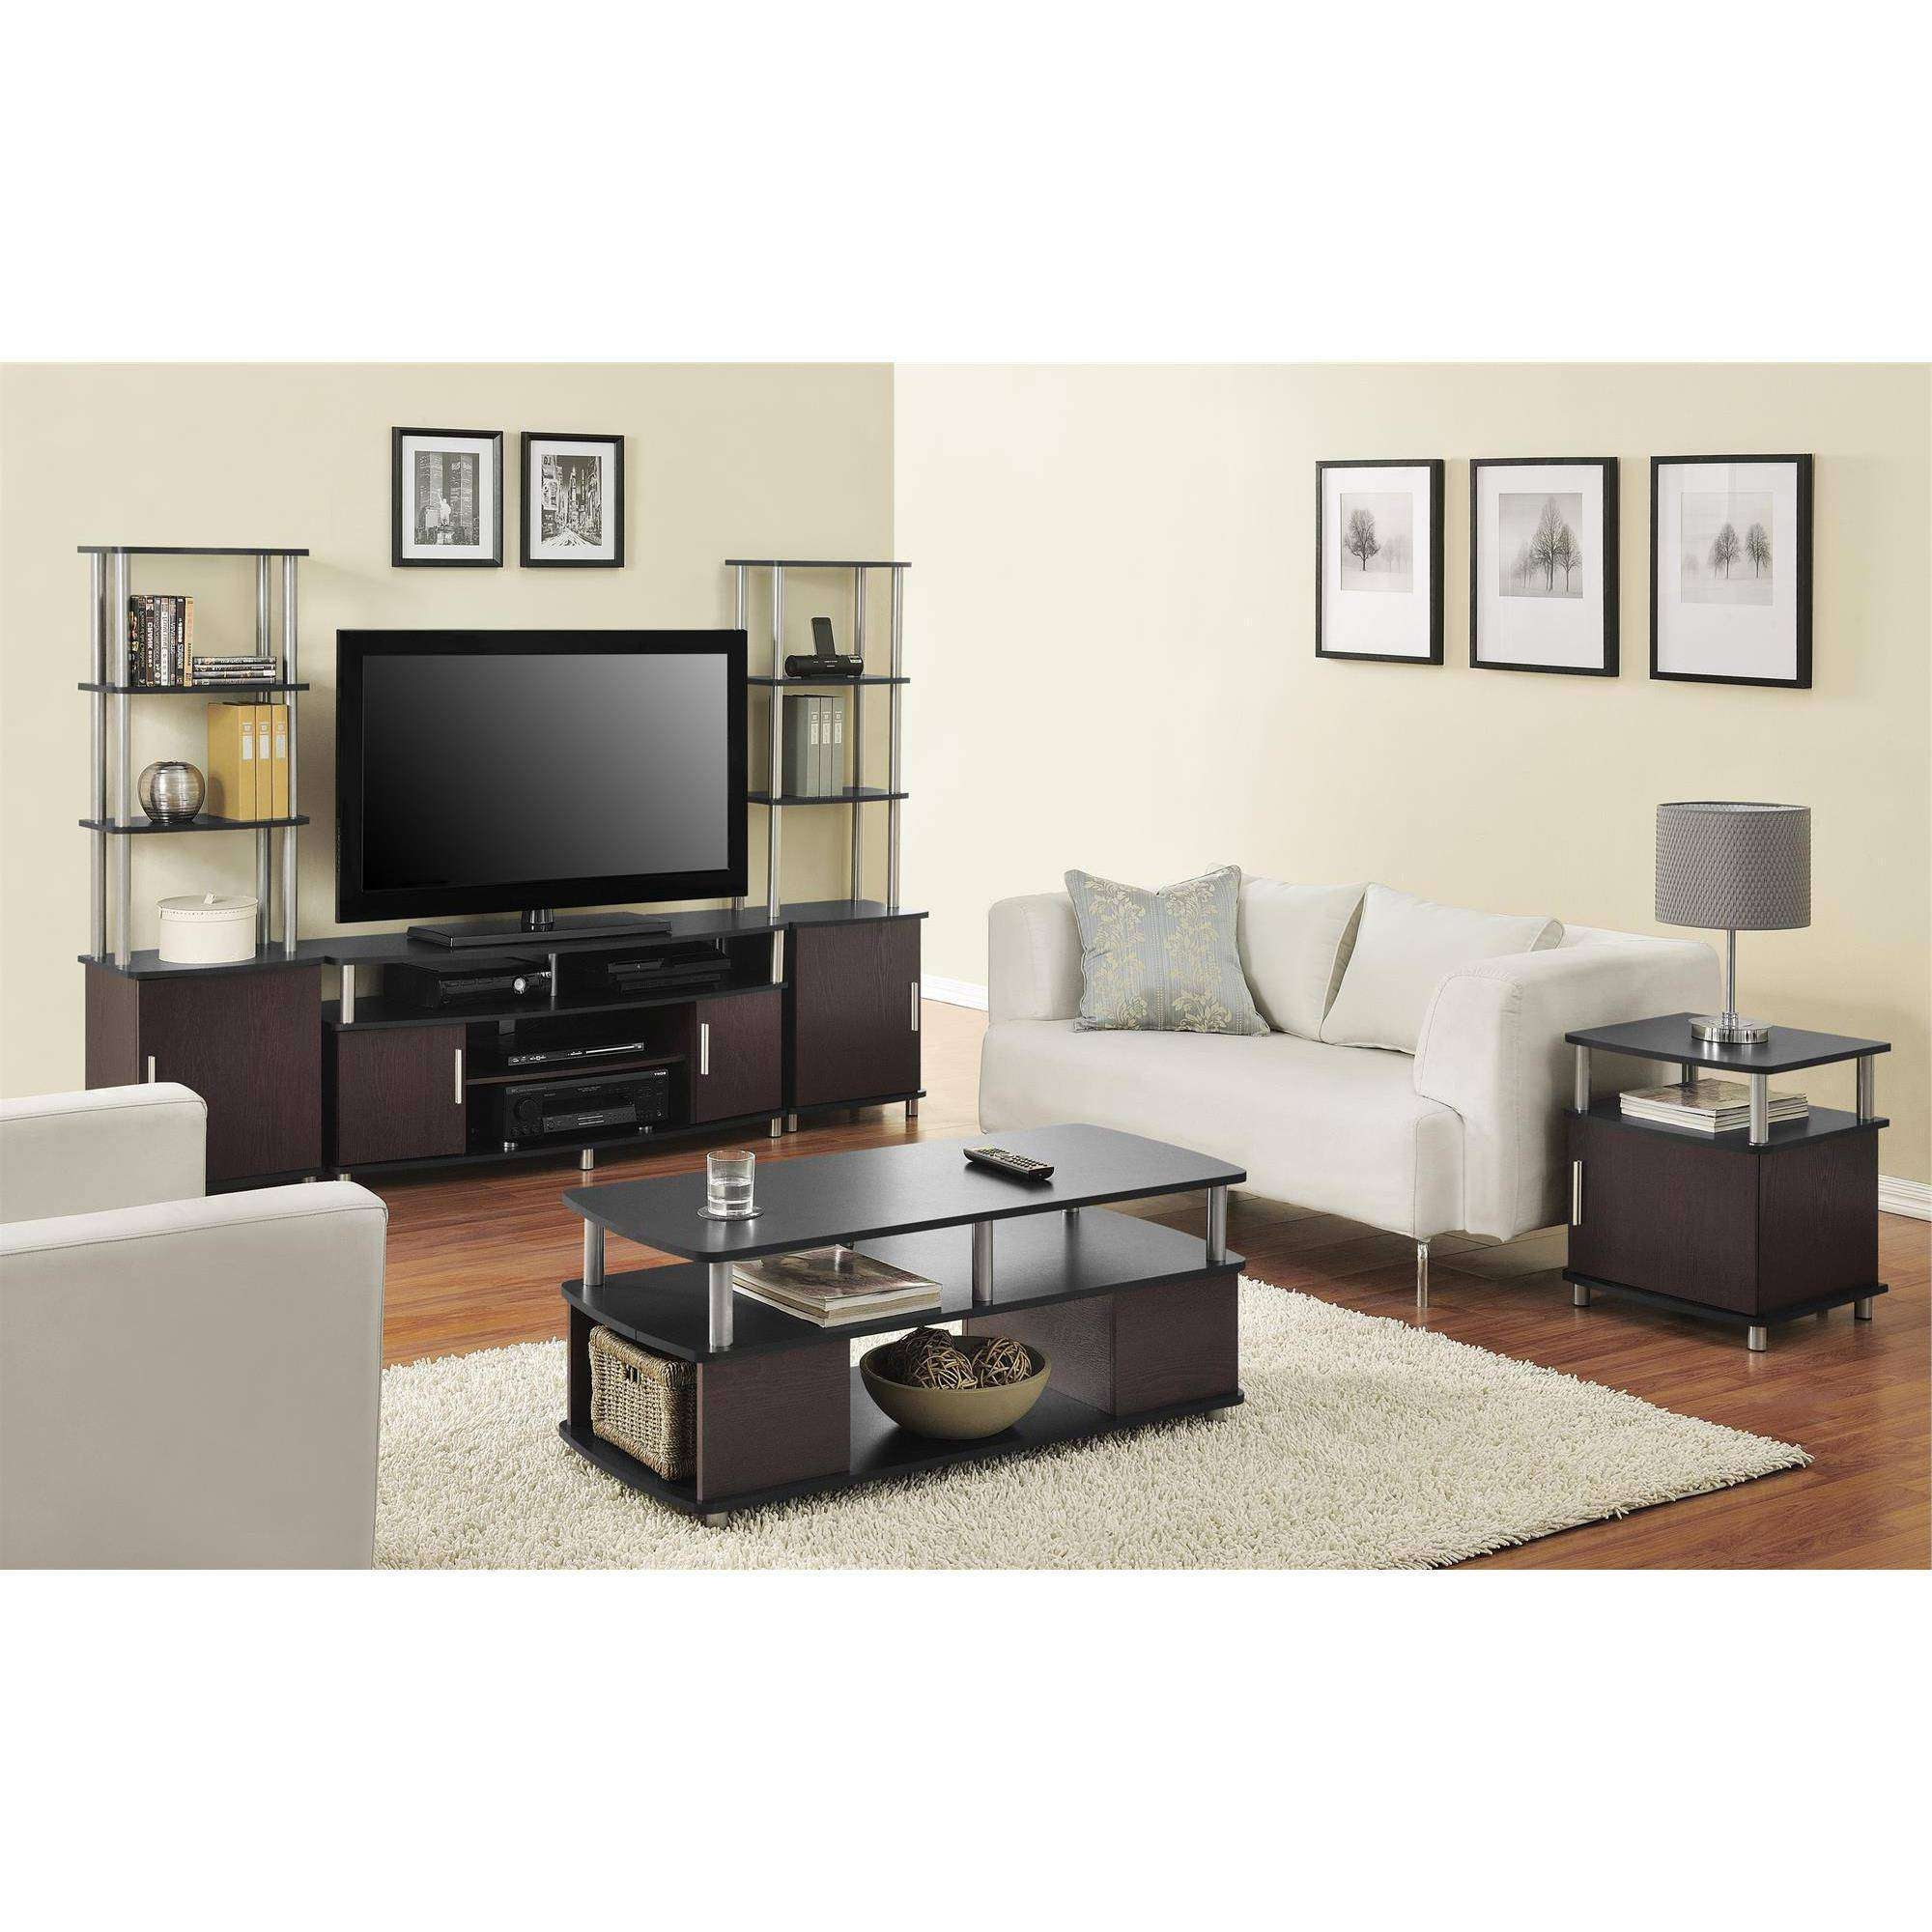 Table : Modern Coffee Table Stunning Tv Cabinets And Coffee Table With Tv Cabinets And Coffee Table Sets (View 6 of 20)